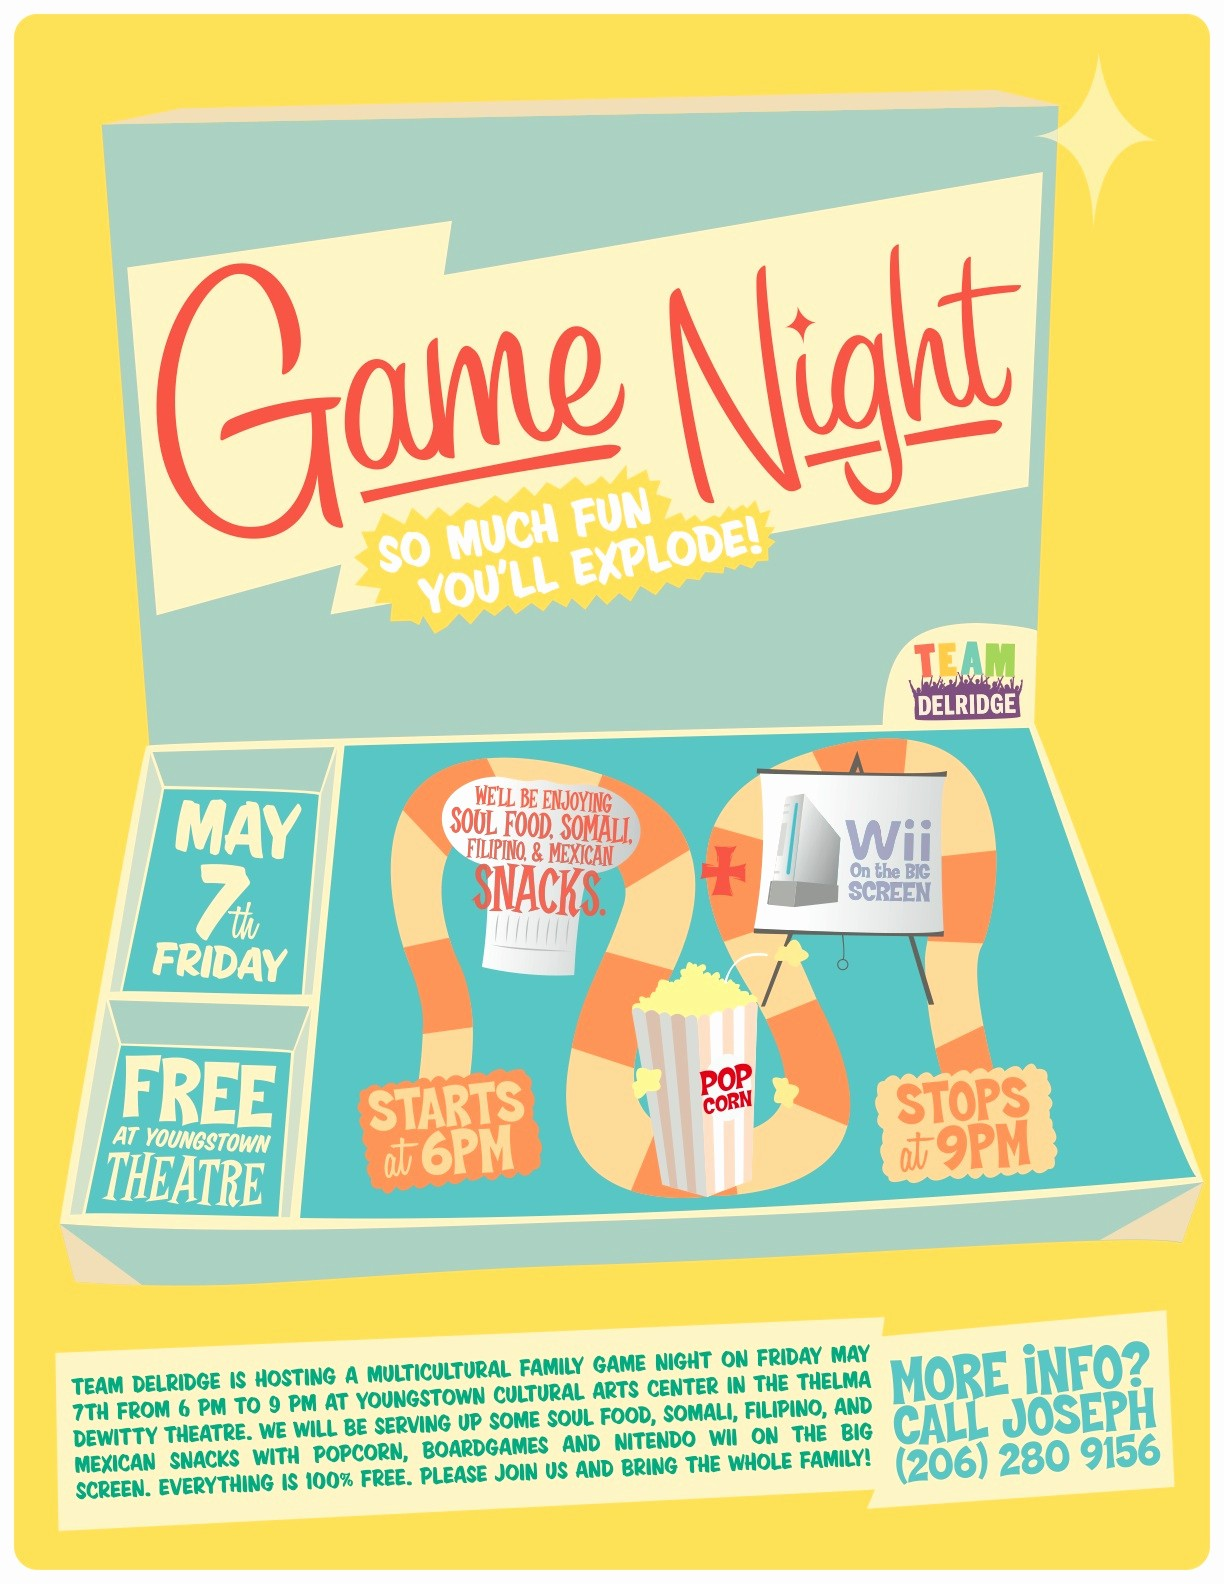 Free Game Night Flyer Template New Game Night Flyer Template Yourweek Eca25e